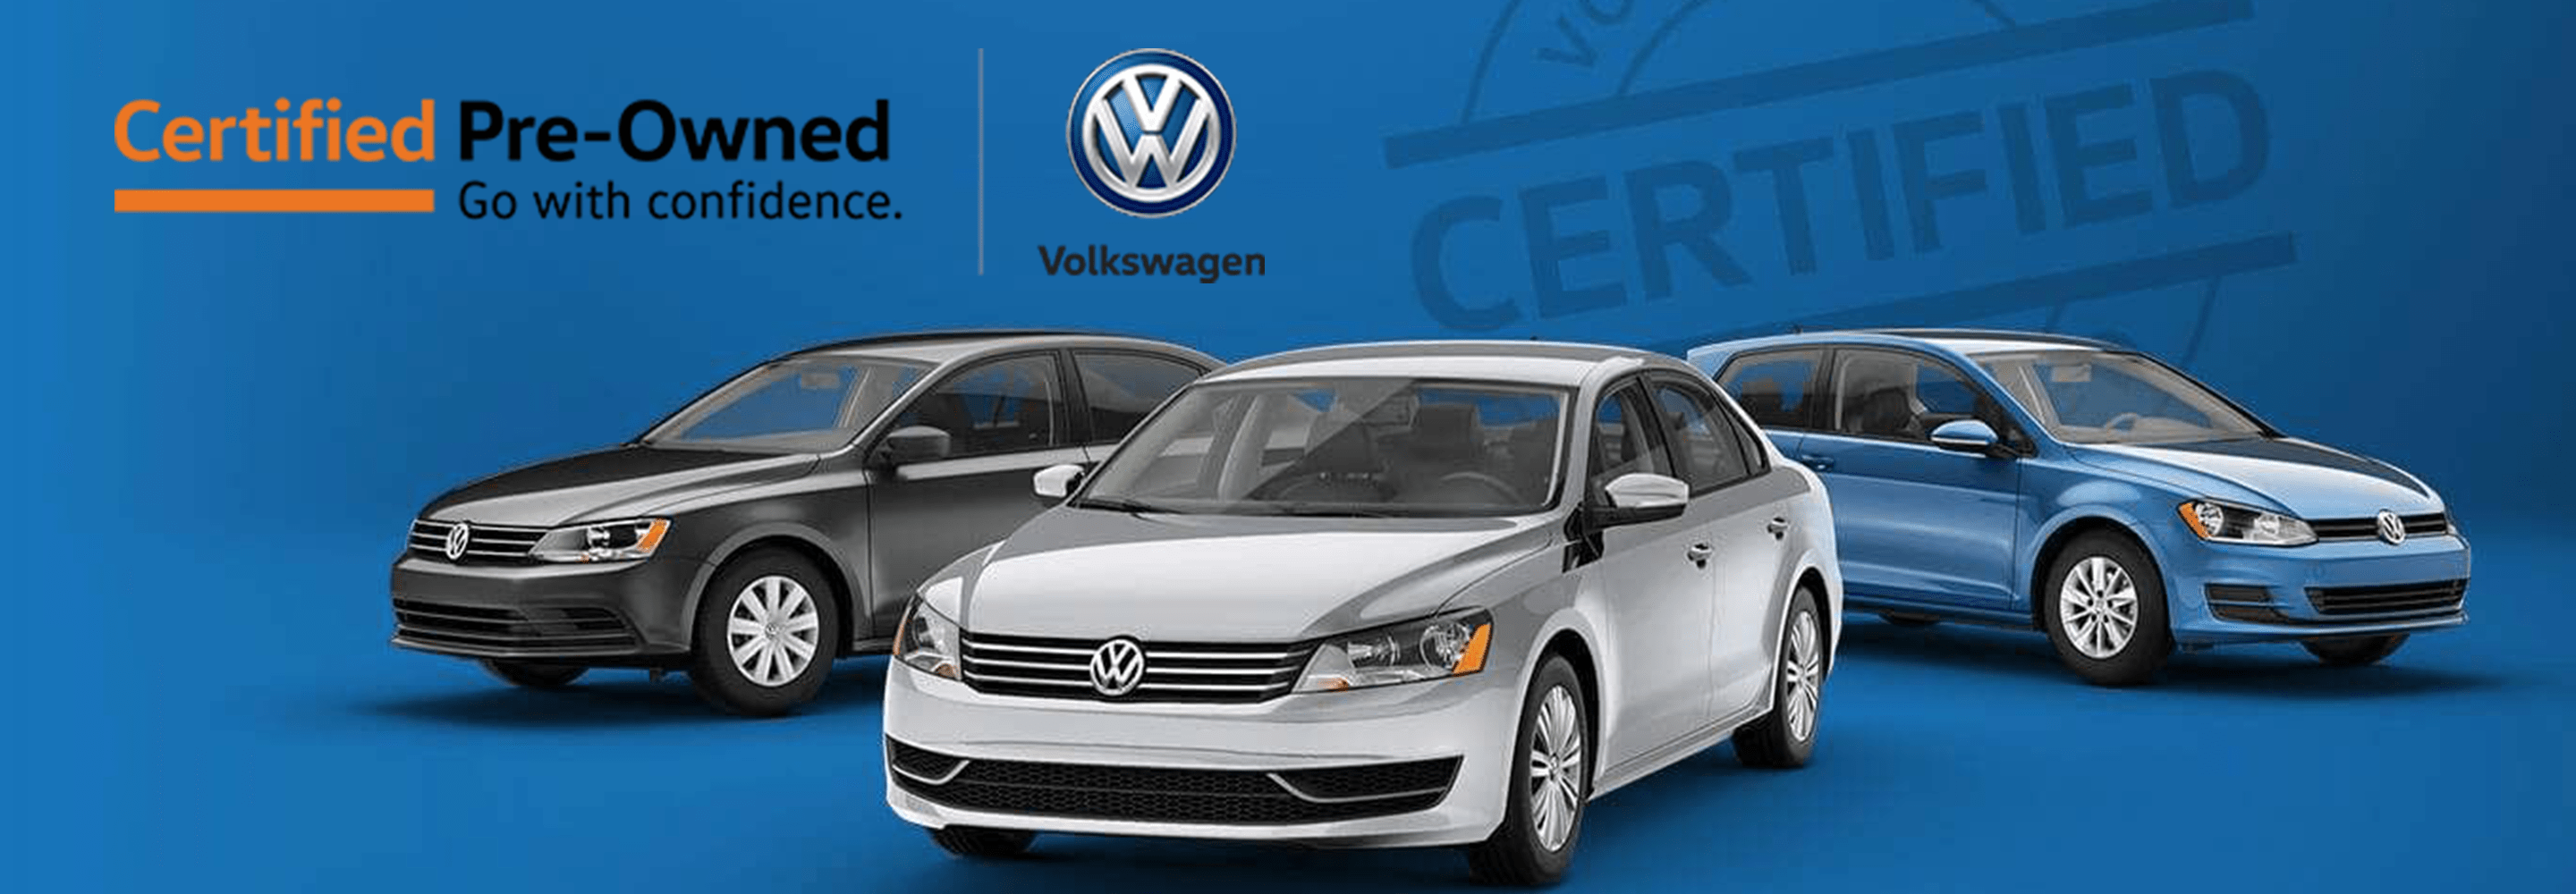 Volkswagen Certified Pre-Owned Benefits and Warranties